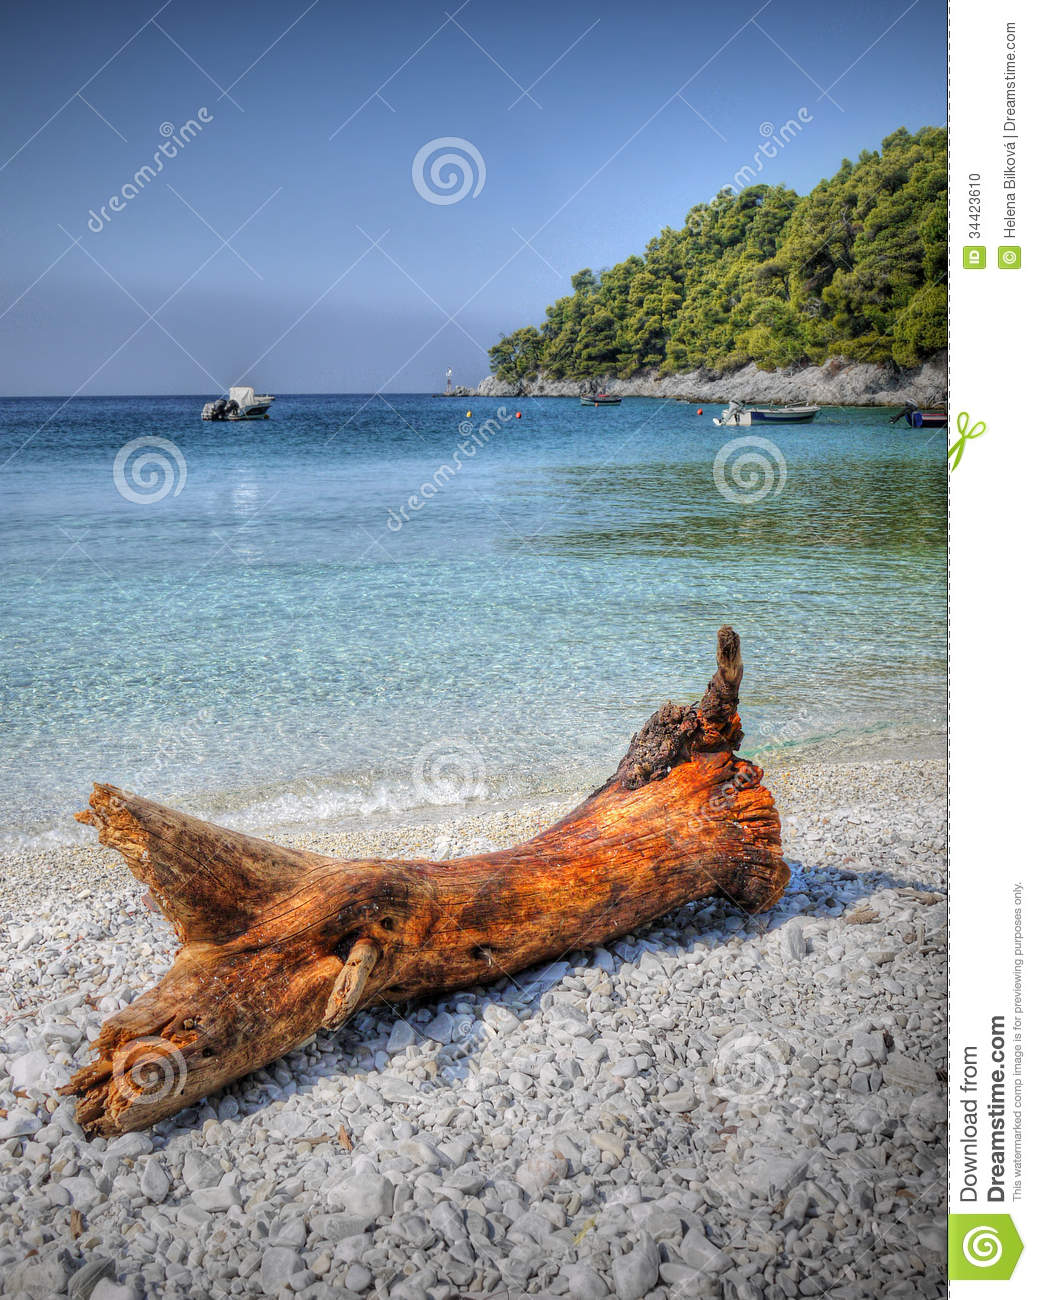 Turquoise Water Beach Vacation Swimming Stock Photo